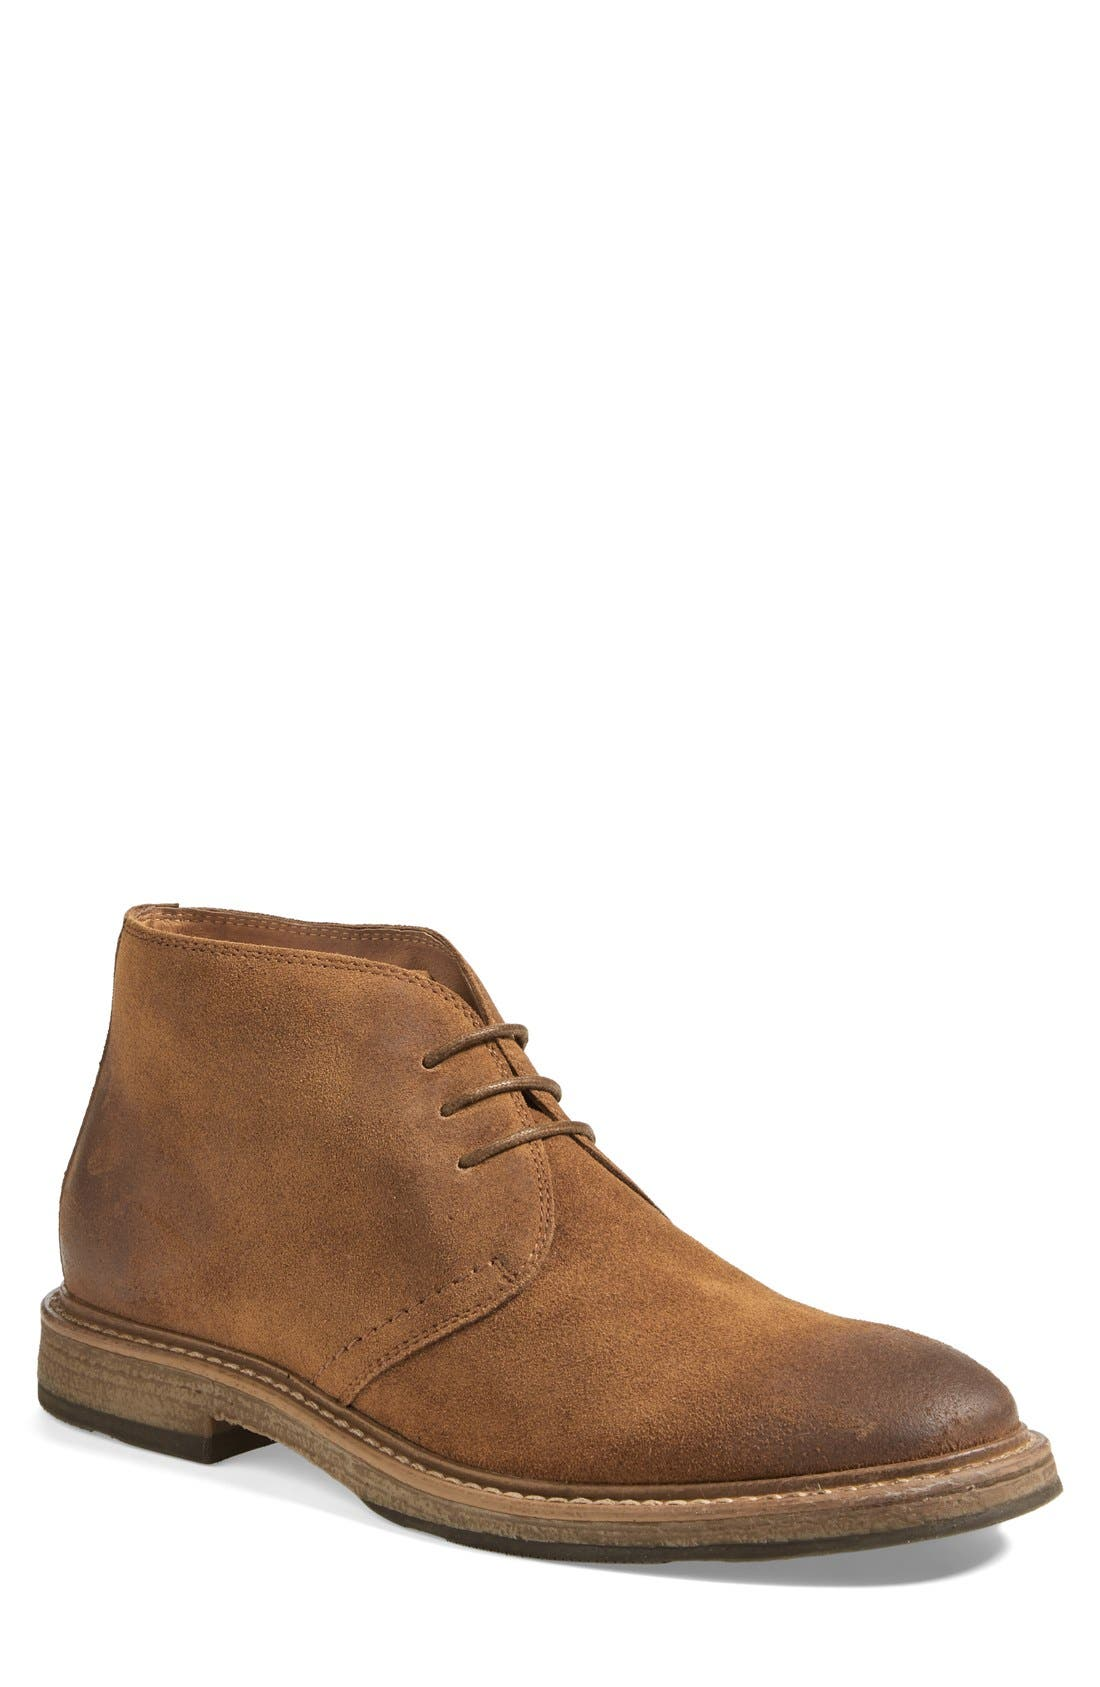 'Canyon' Chukka Boot,                             Main thumbnail 2, color,